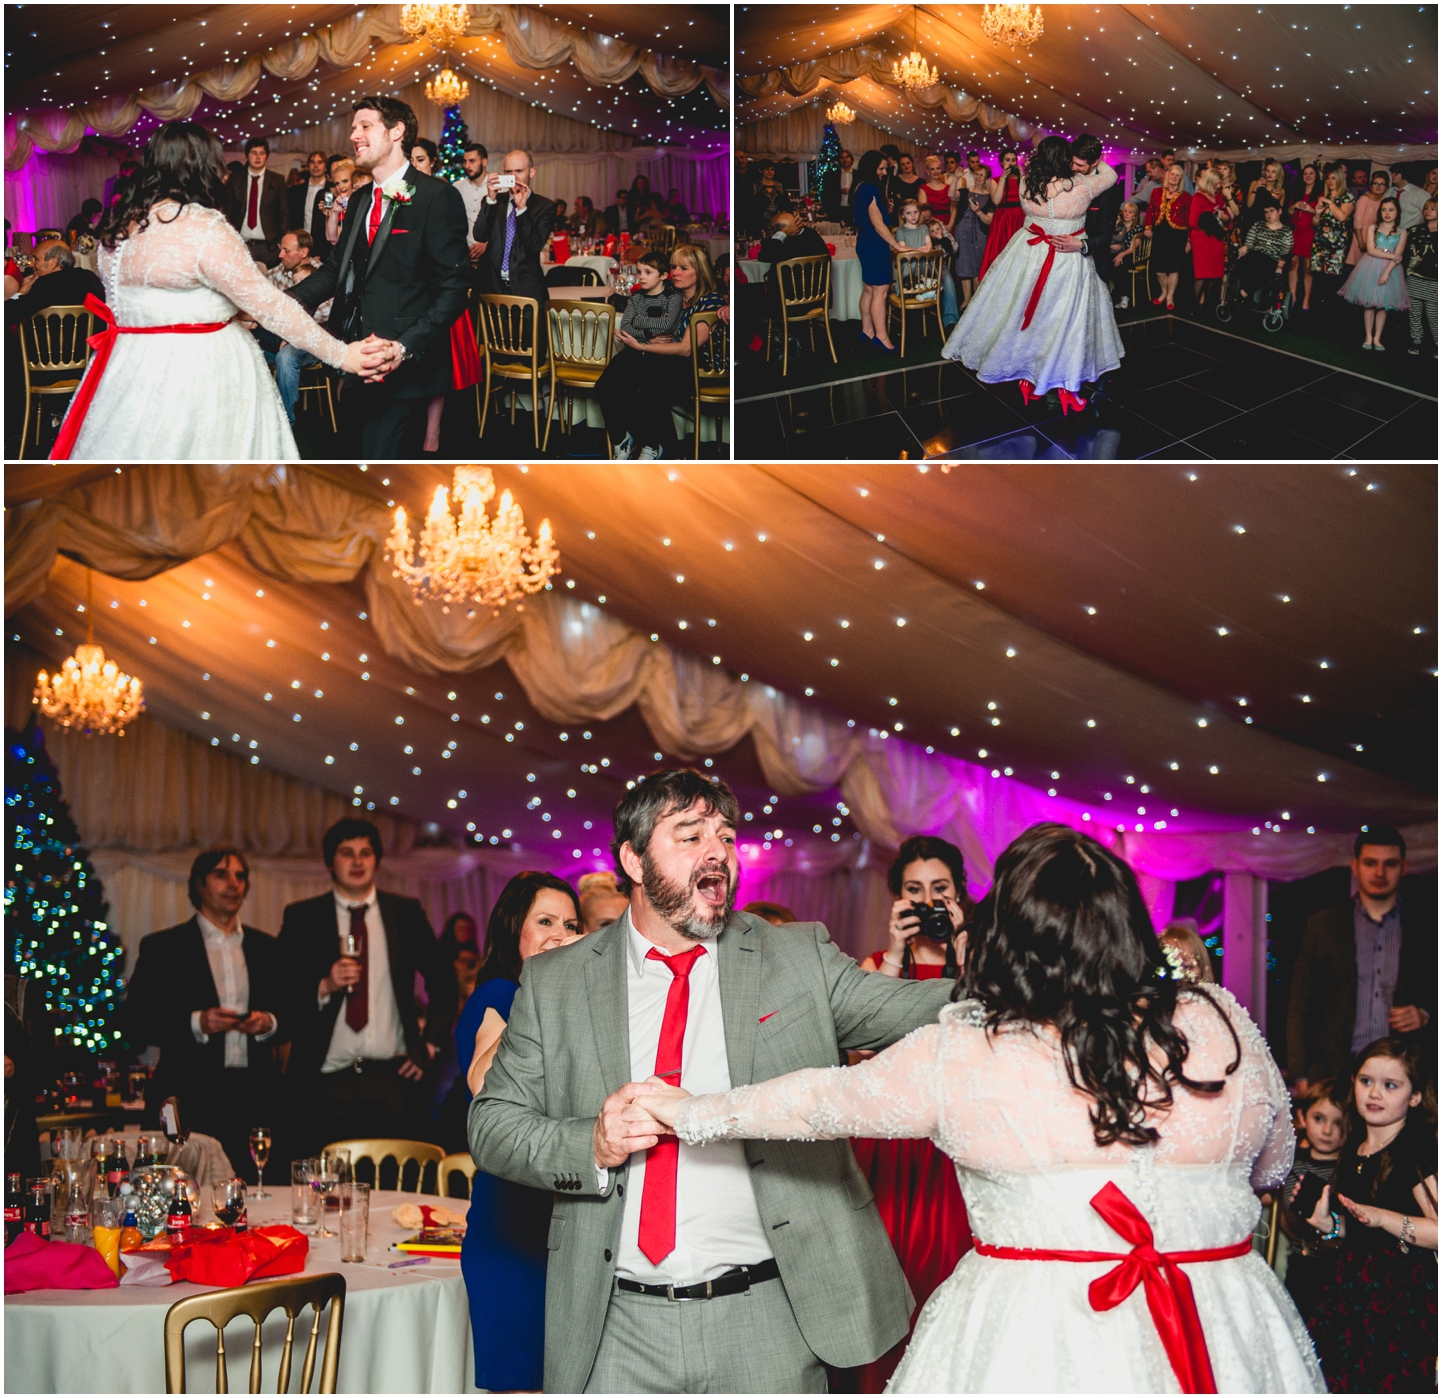 Old School House, Weeford, Winter Wedding Photography at Christmas time by Lisa Carpenter Photos, first dance